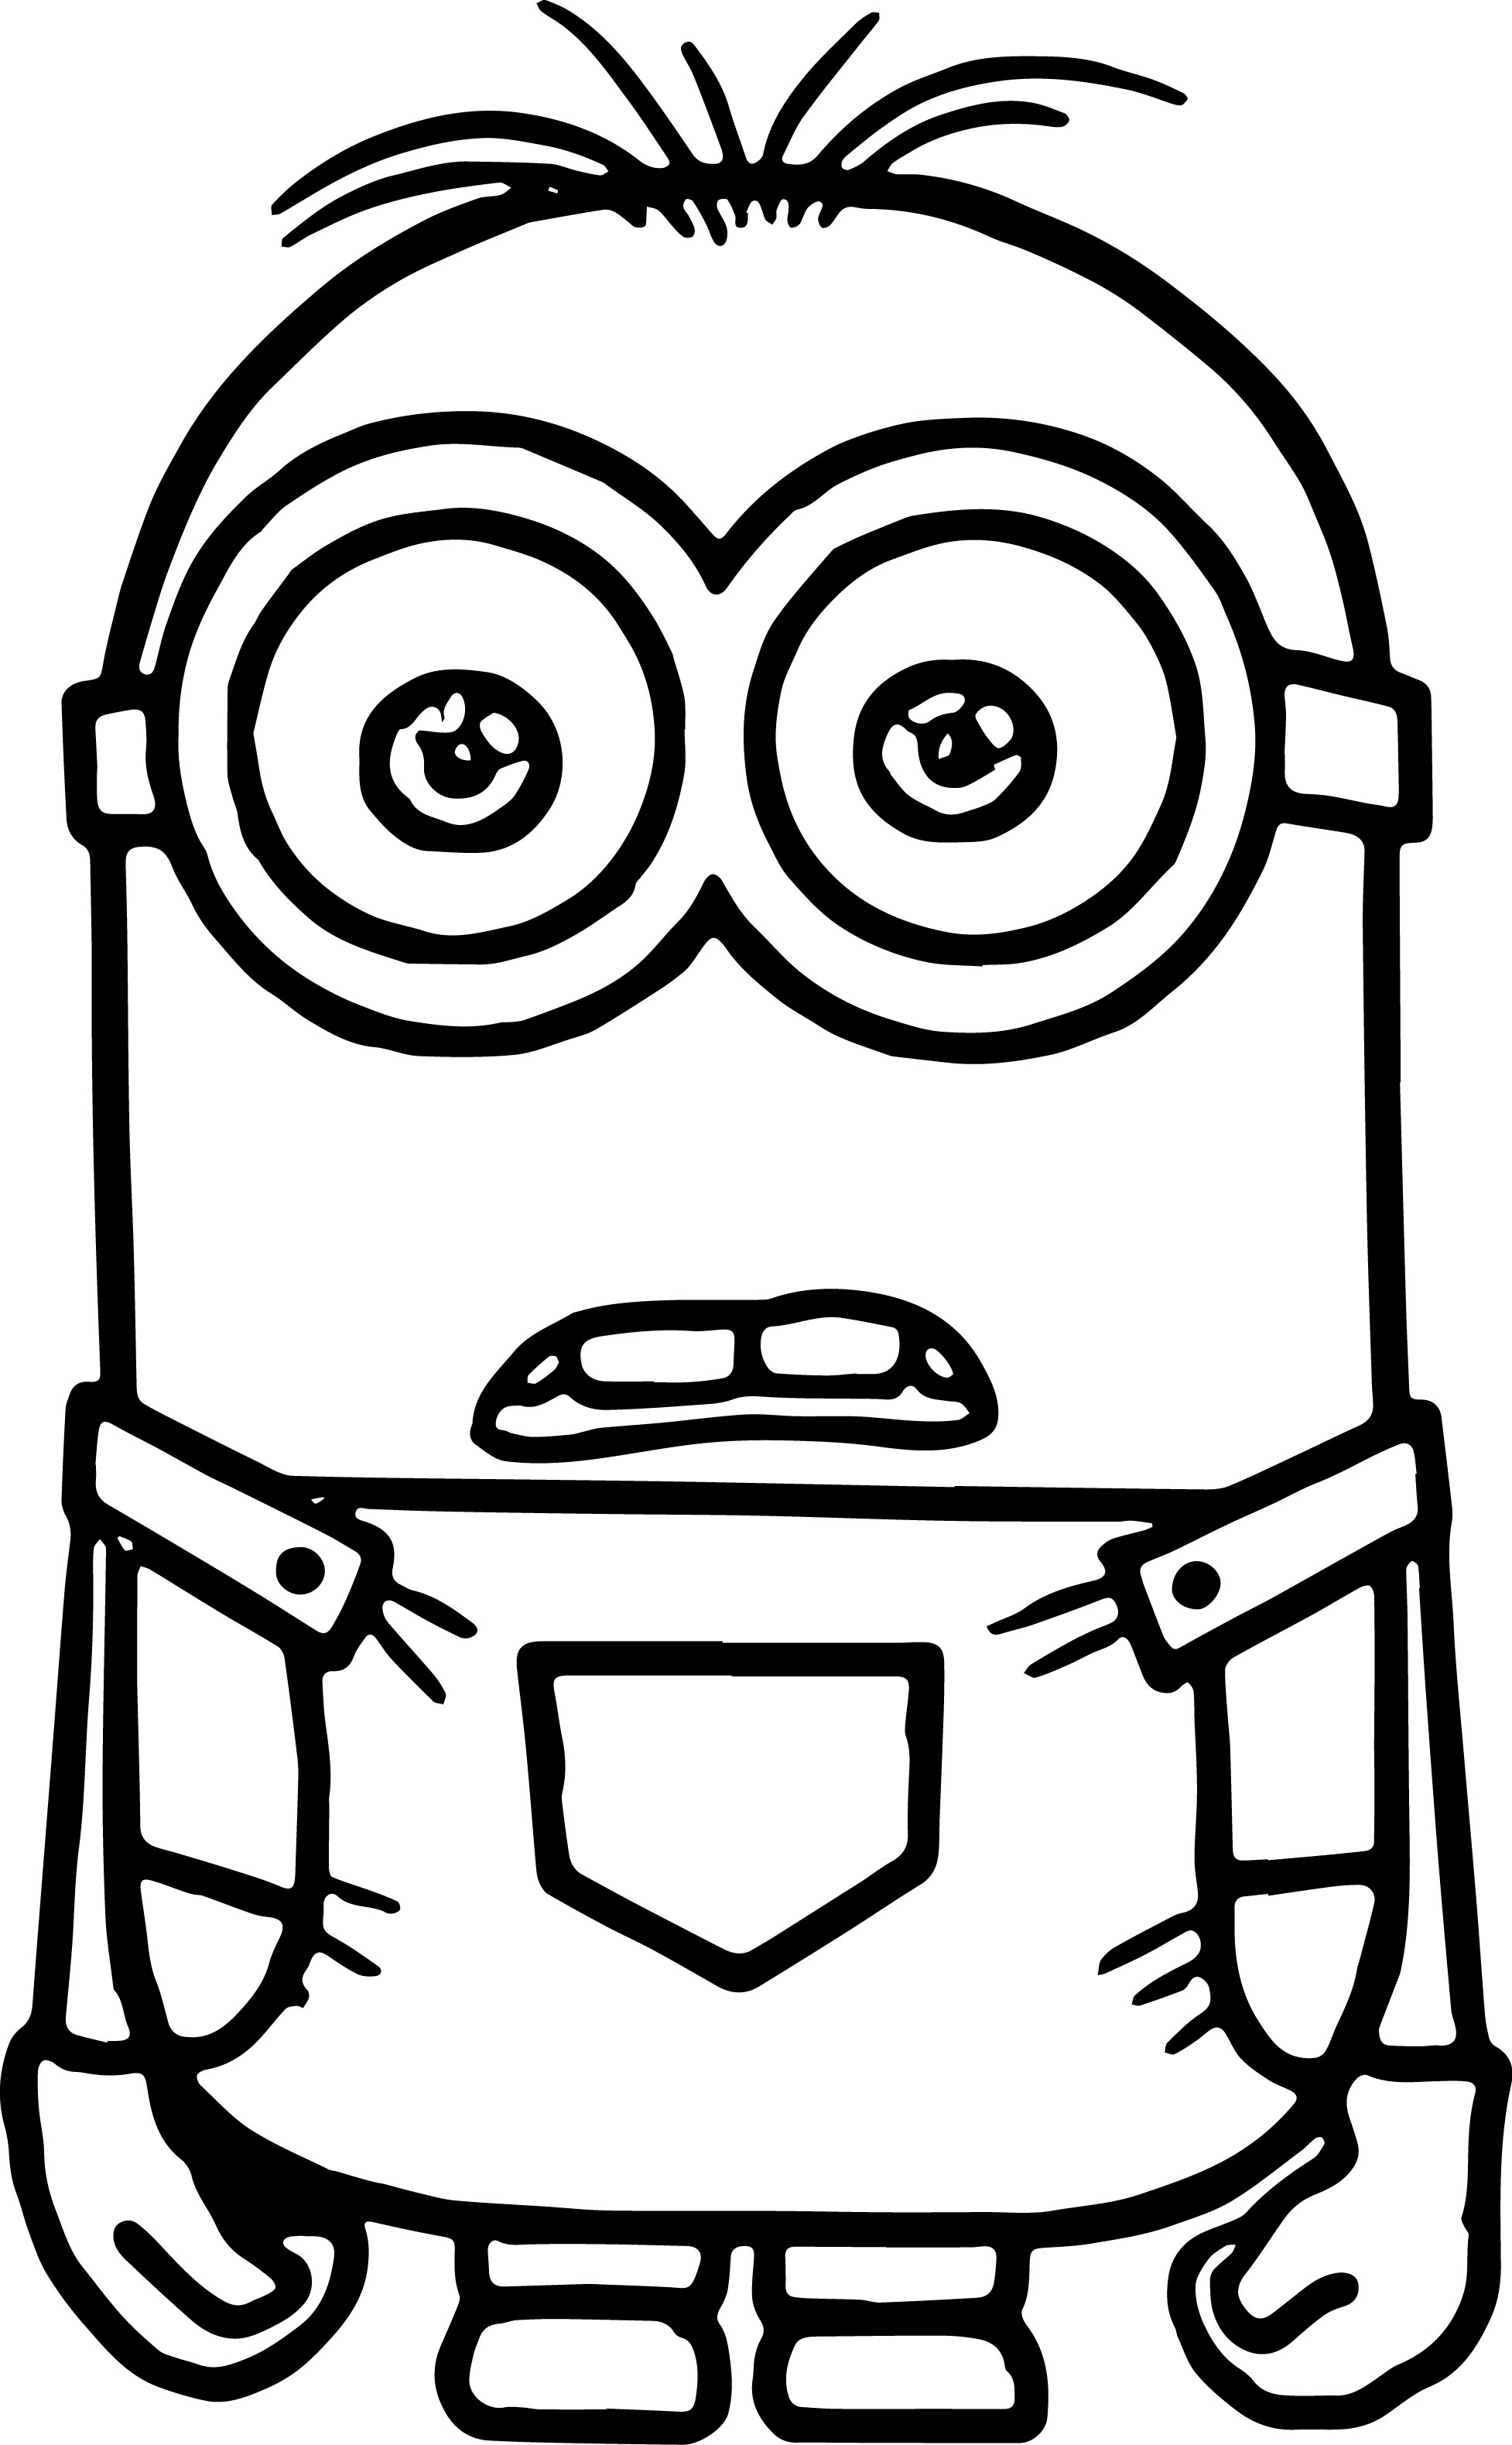 Minion Coloring Pages Fotolip Com Rich Image And Wallpaper Minions Coloring Page